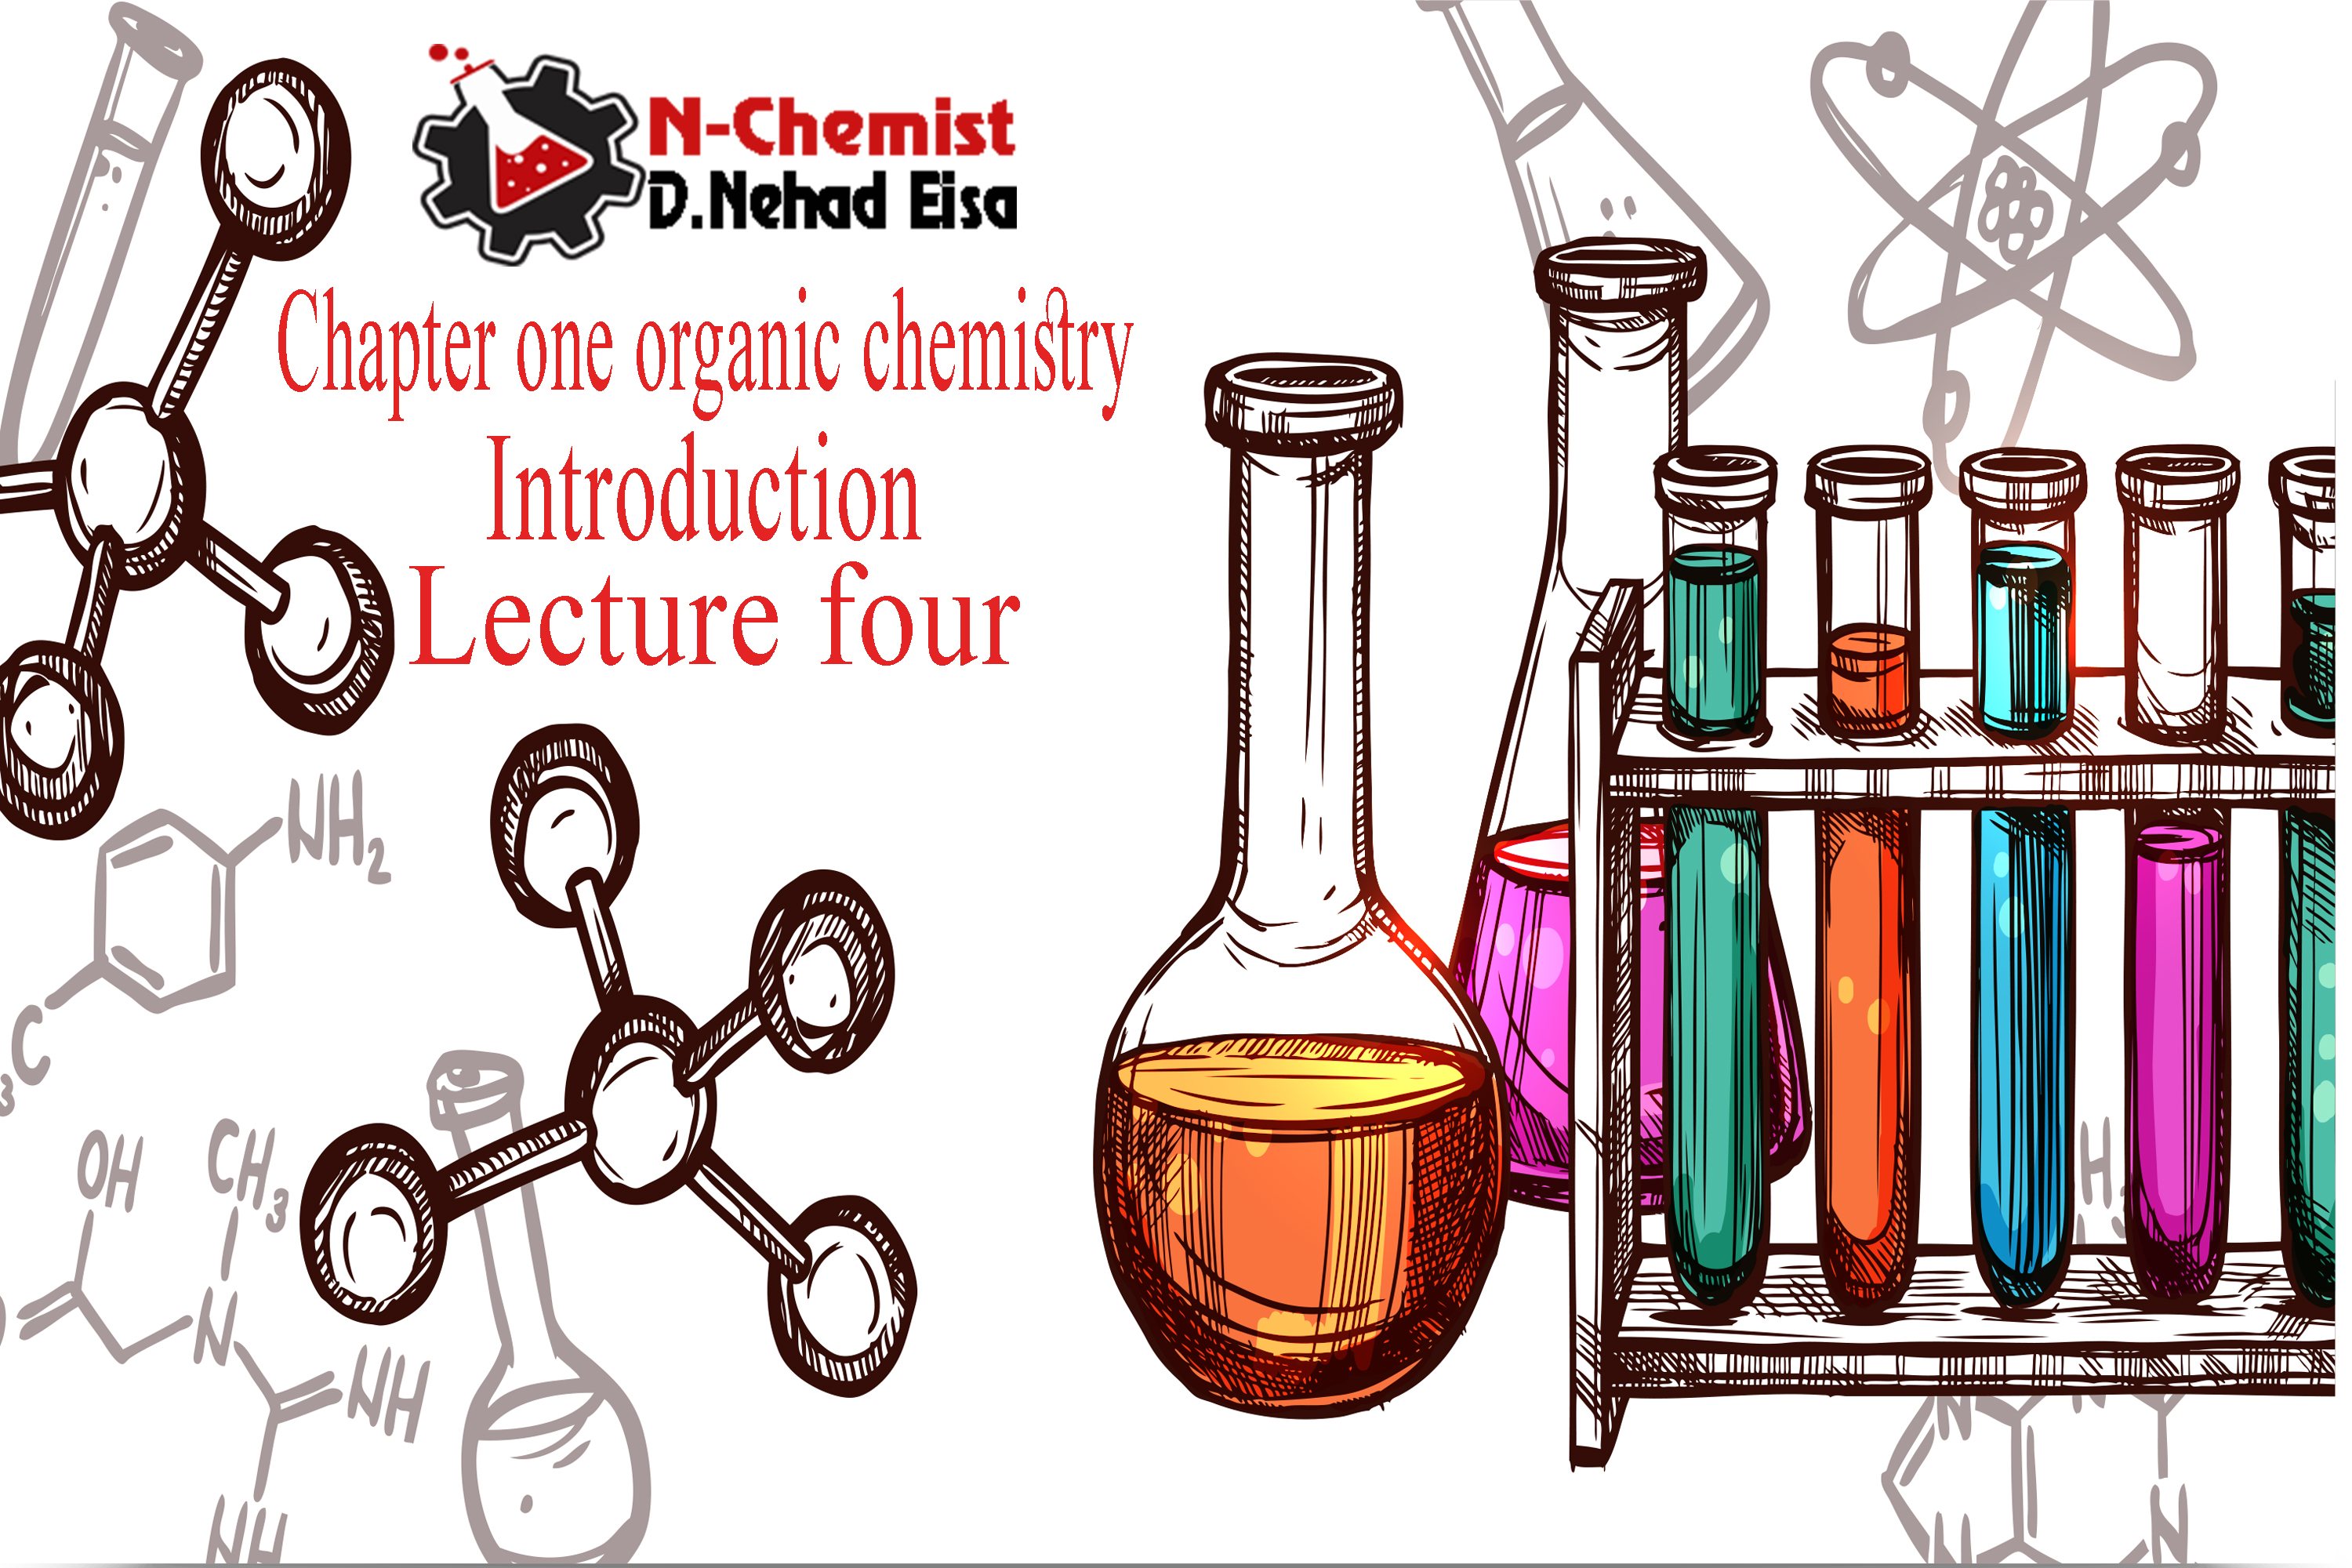 Chapter one organic chemistry Introduction Lecture four